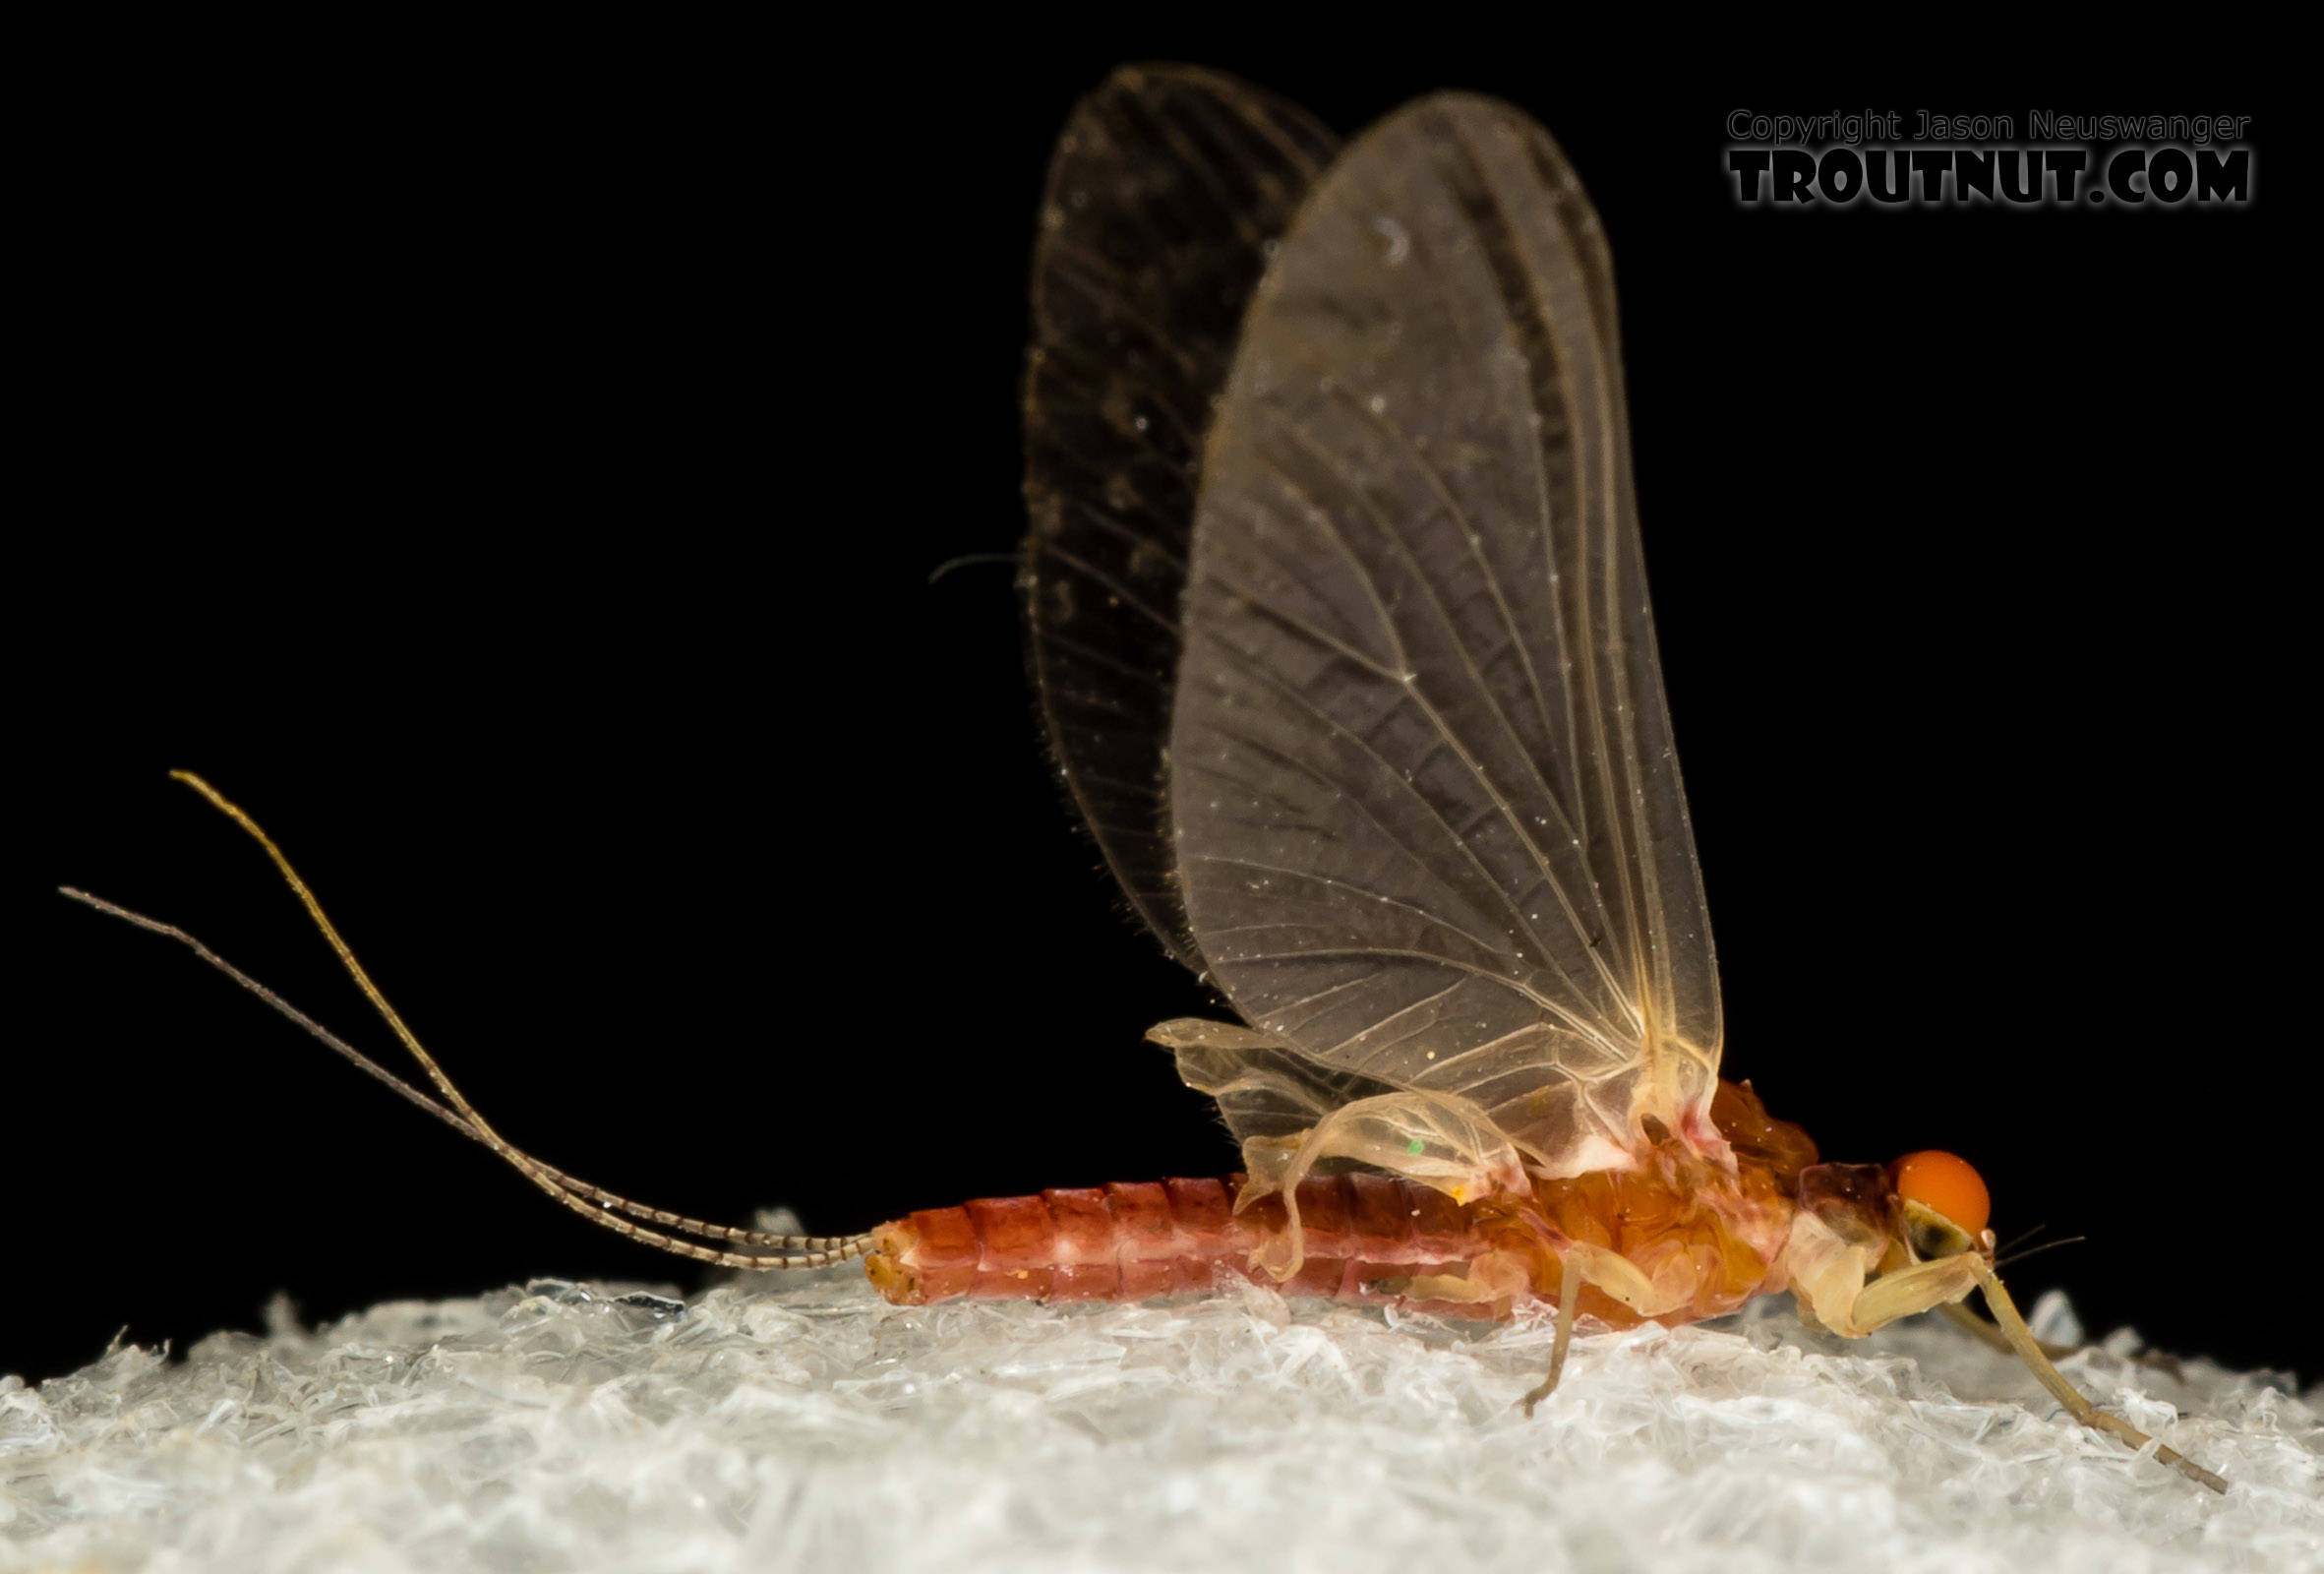 Male Ephemerellidae (Hendricksons, Sulphurs, PMDs, BWOs) Mayfly Dun from the South Fork Snoqualmie River in Washington